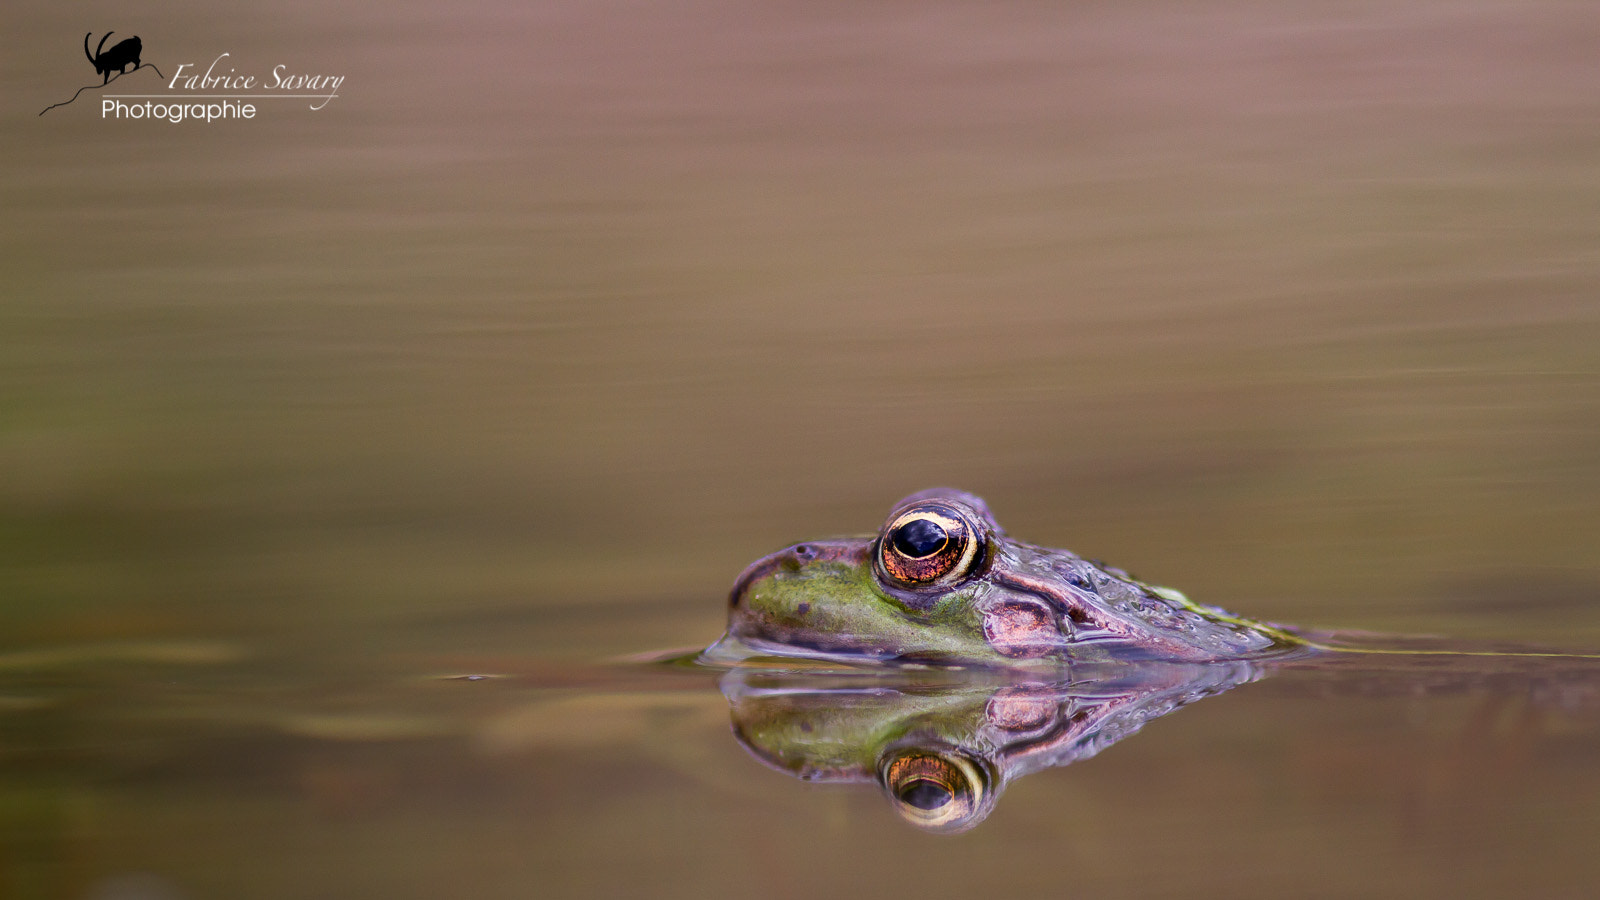 Photograph Grenouille rieuse by Fabrice Savary  on 500px